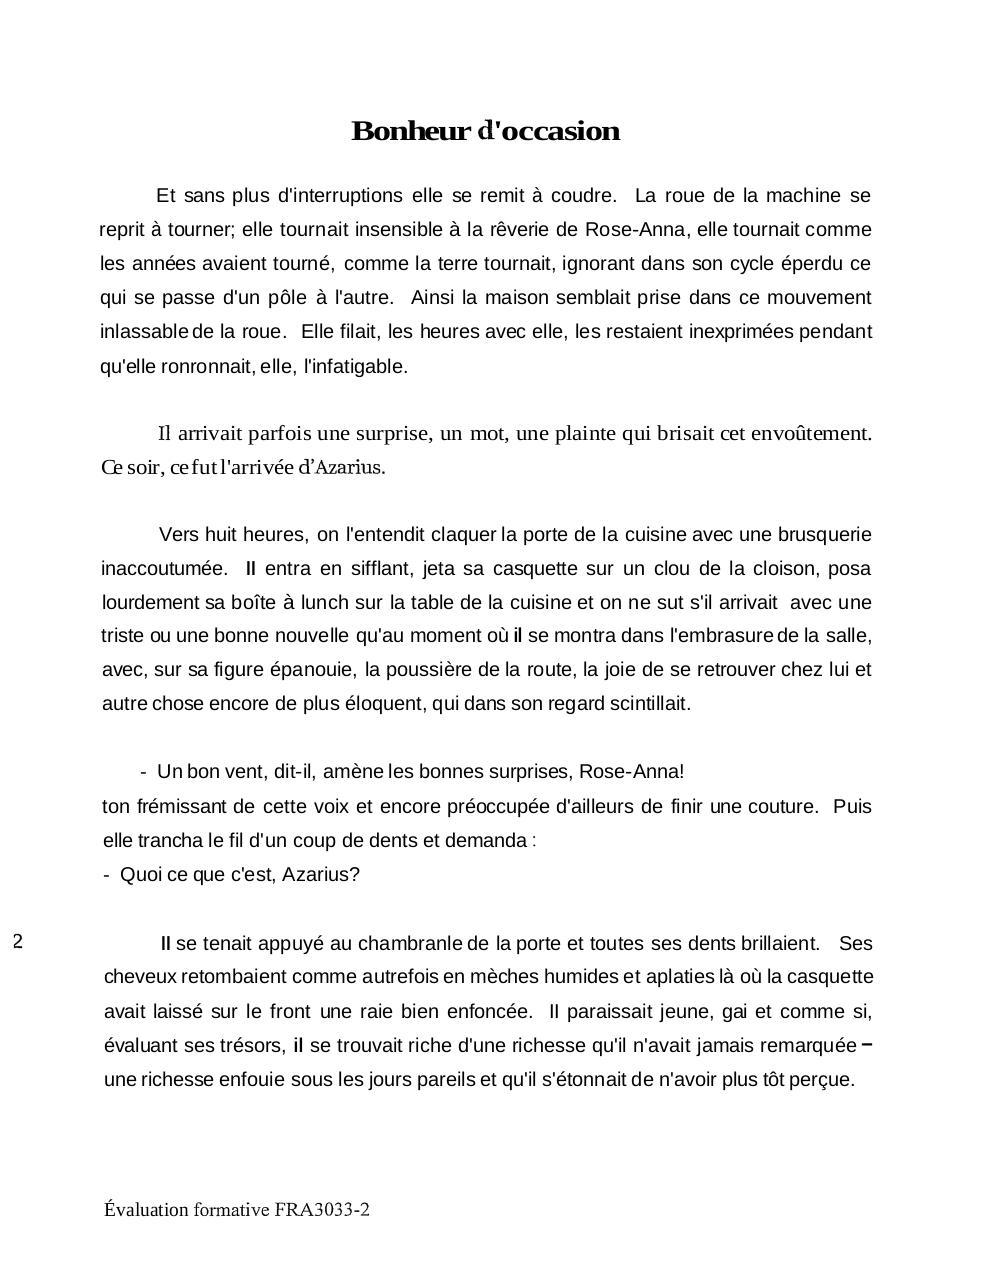 FRA-3033 - Exercice supplémentaire.pdf - page 2/11